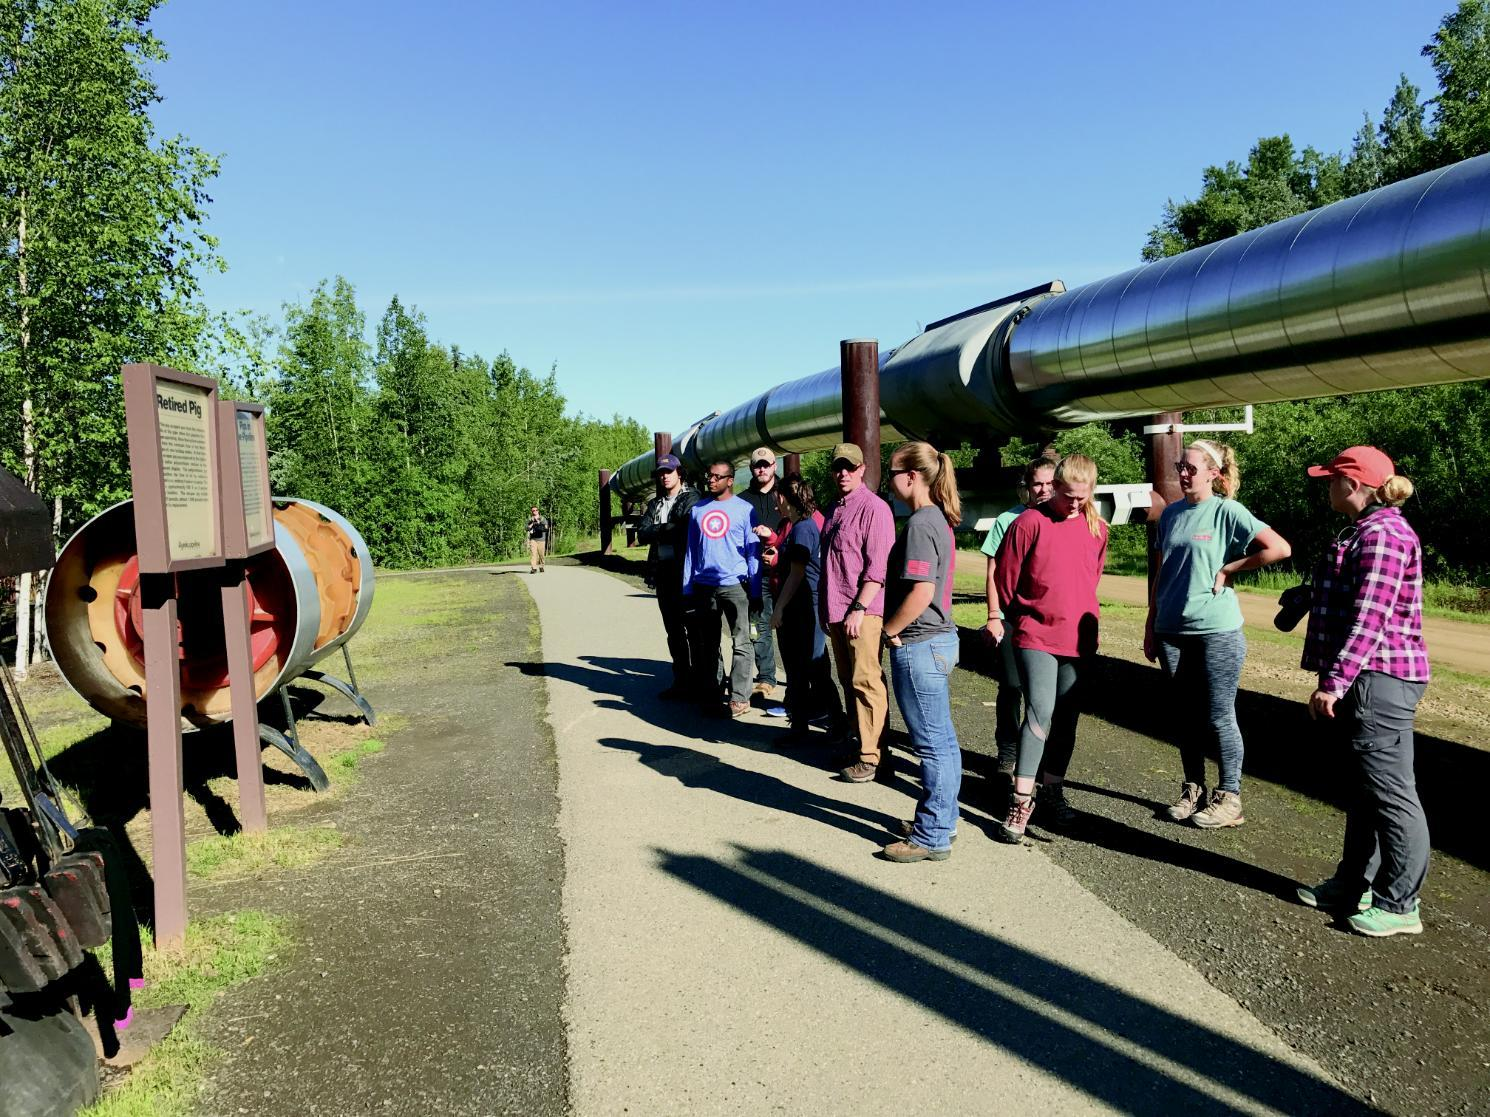 Students traveled to Alaska to study issues surrounding pipelines